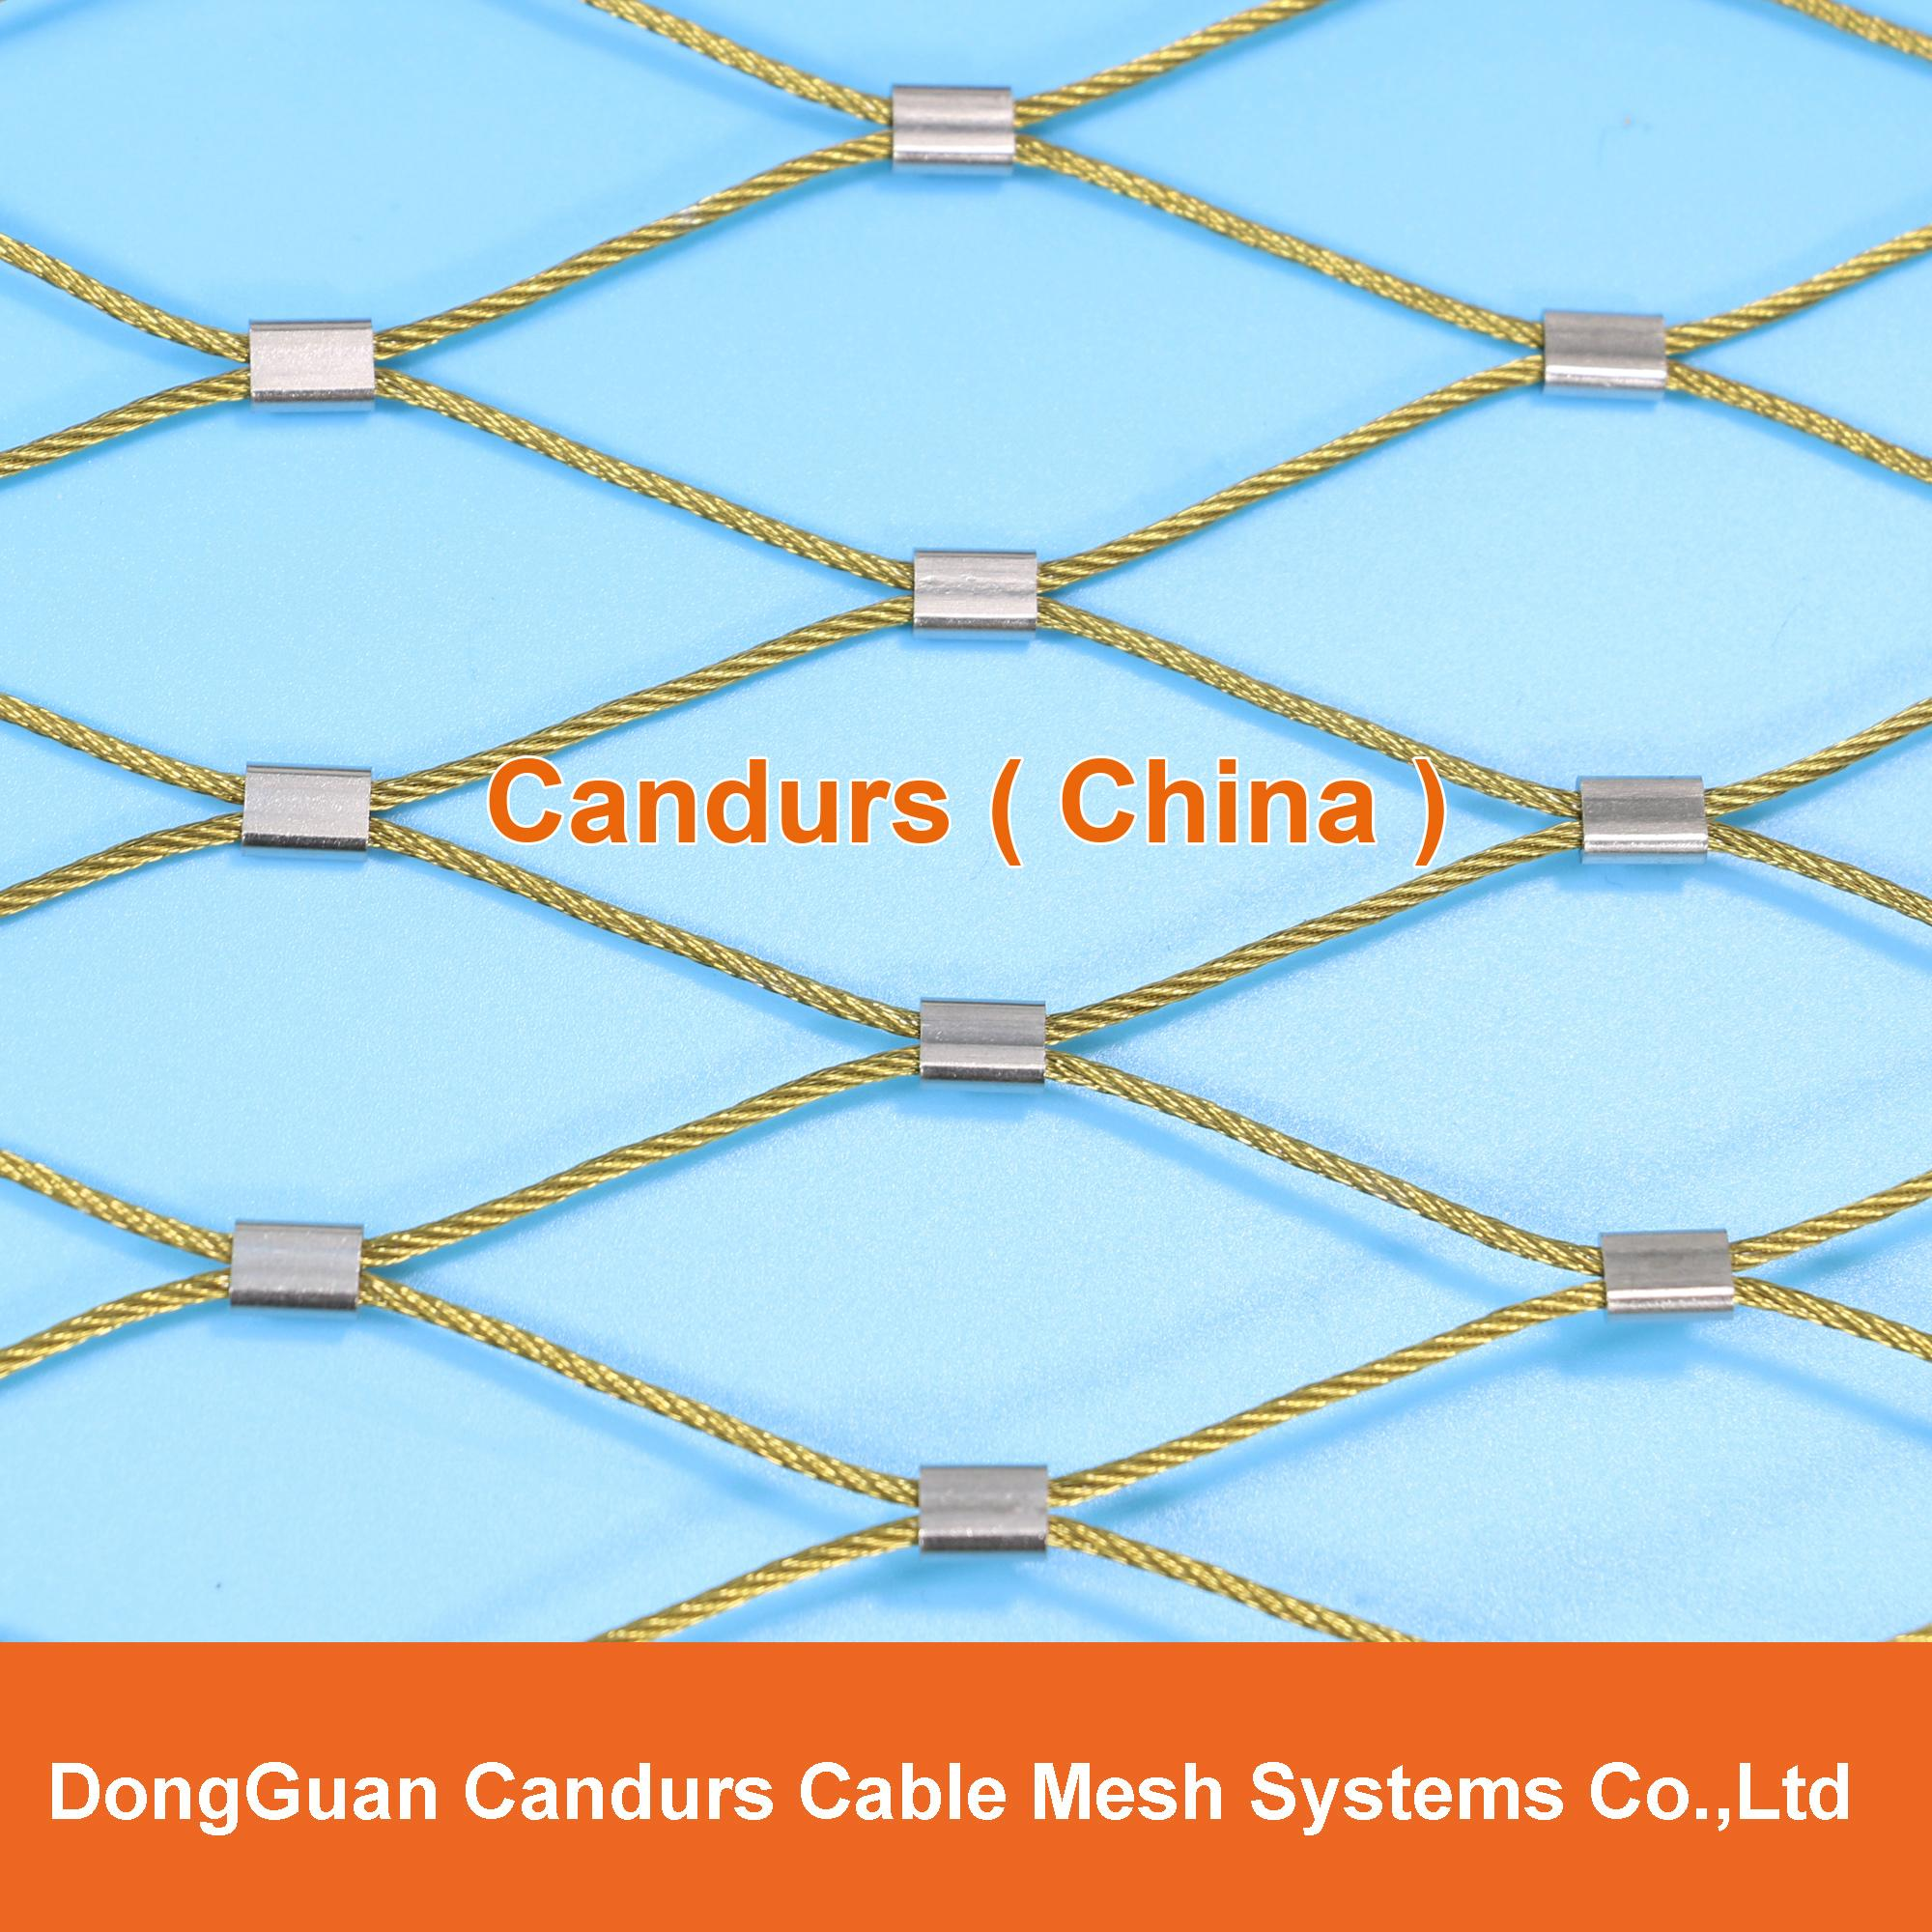 X Tend Flexible Stainless Steel Cable (Rope) Mesh 15